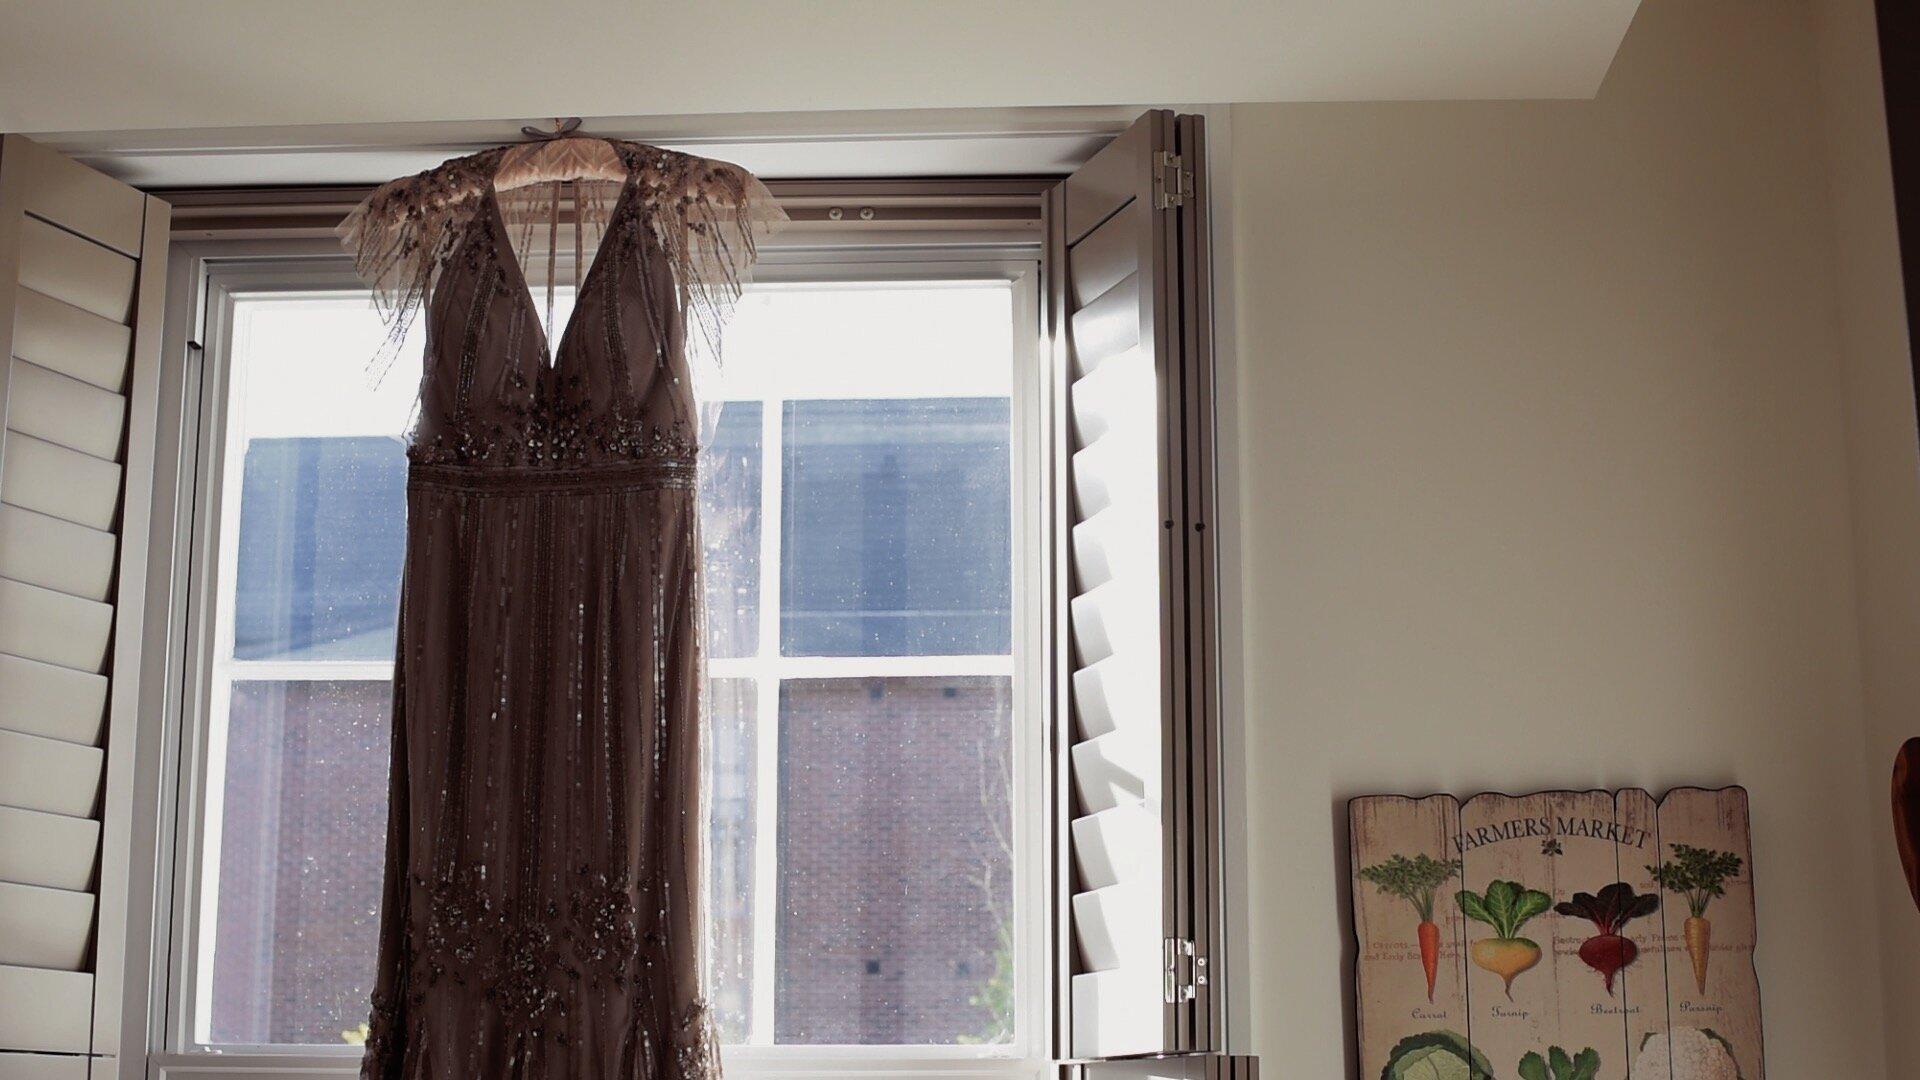 The brides dress hung in front of a window. The dress is salmon pink in colour and heavily inspired by the burlesque era.